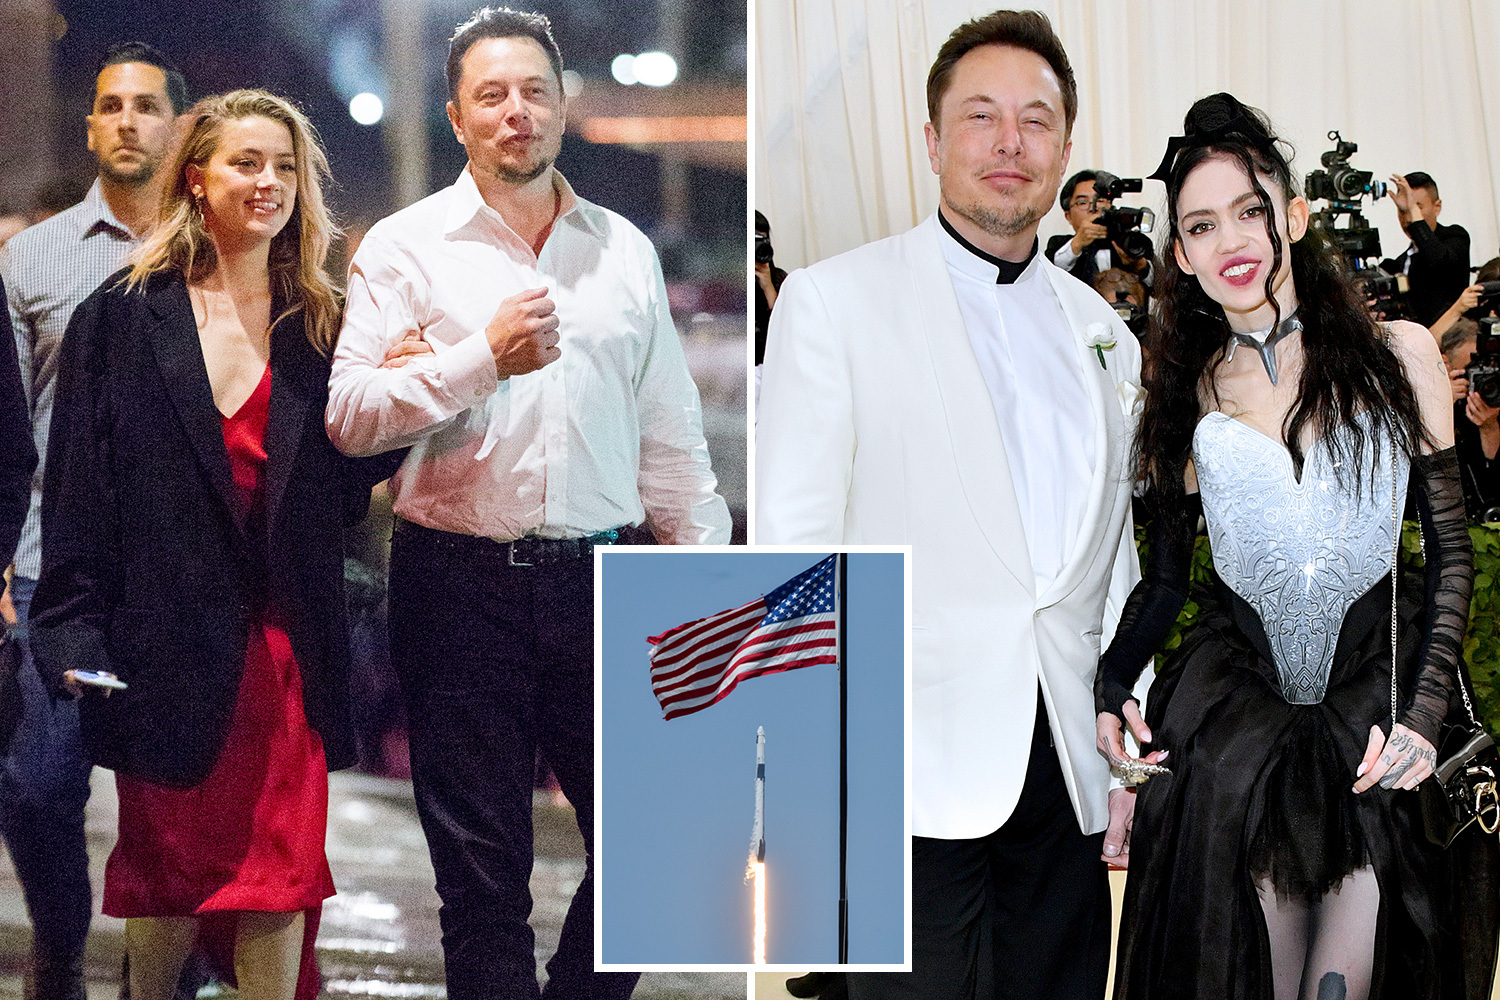 Inside SpaceX billionaire Elon Musk's stormy personal life from divorces to his feud with 'terrible human' dad - The Sun